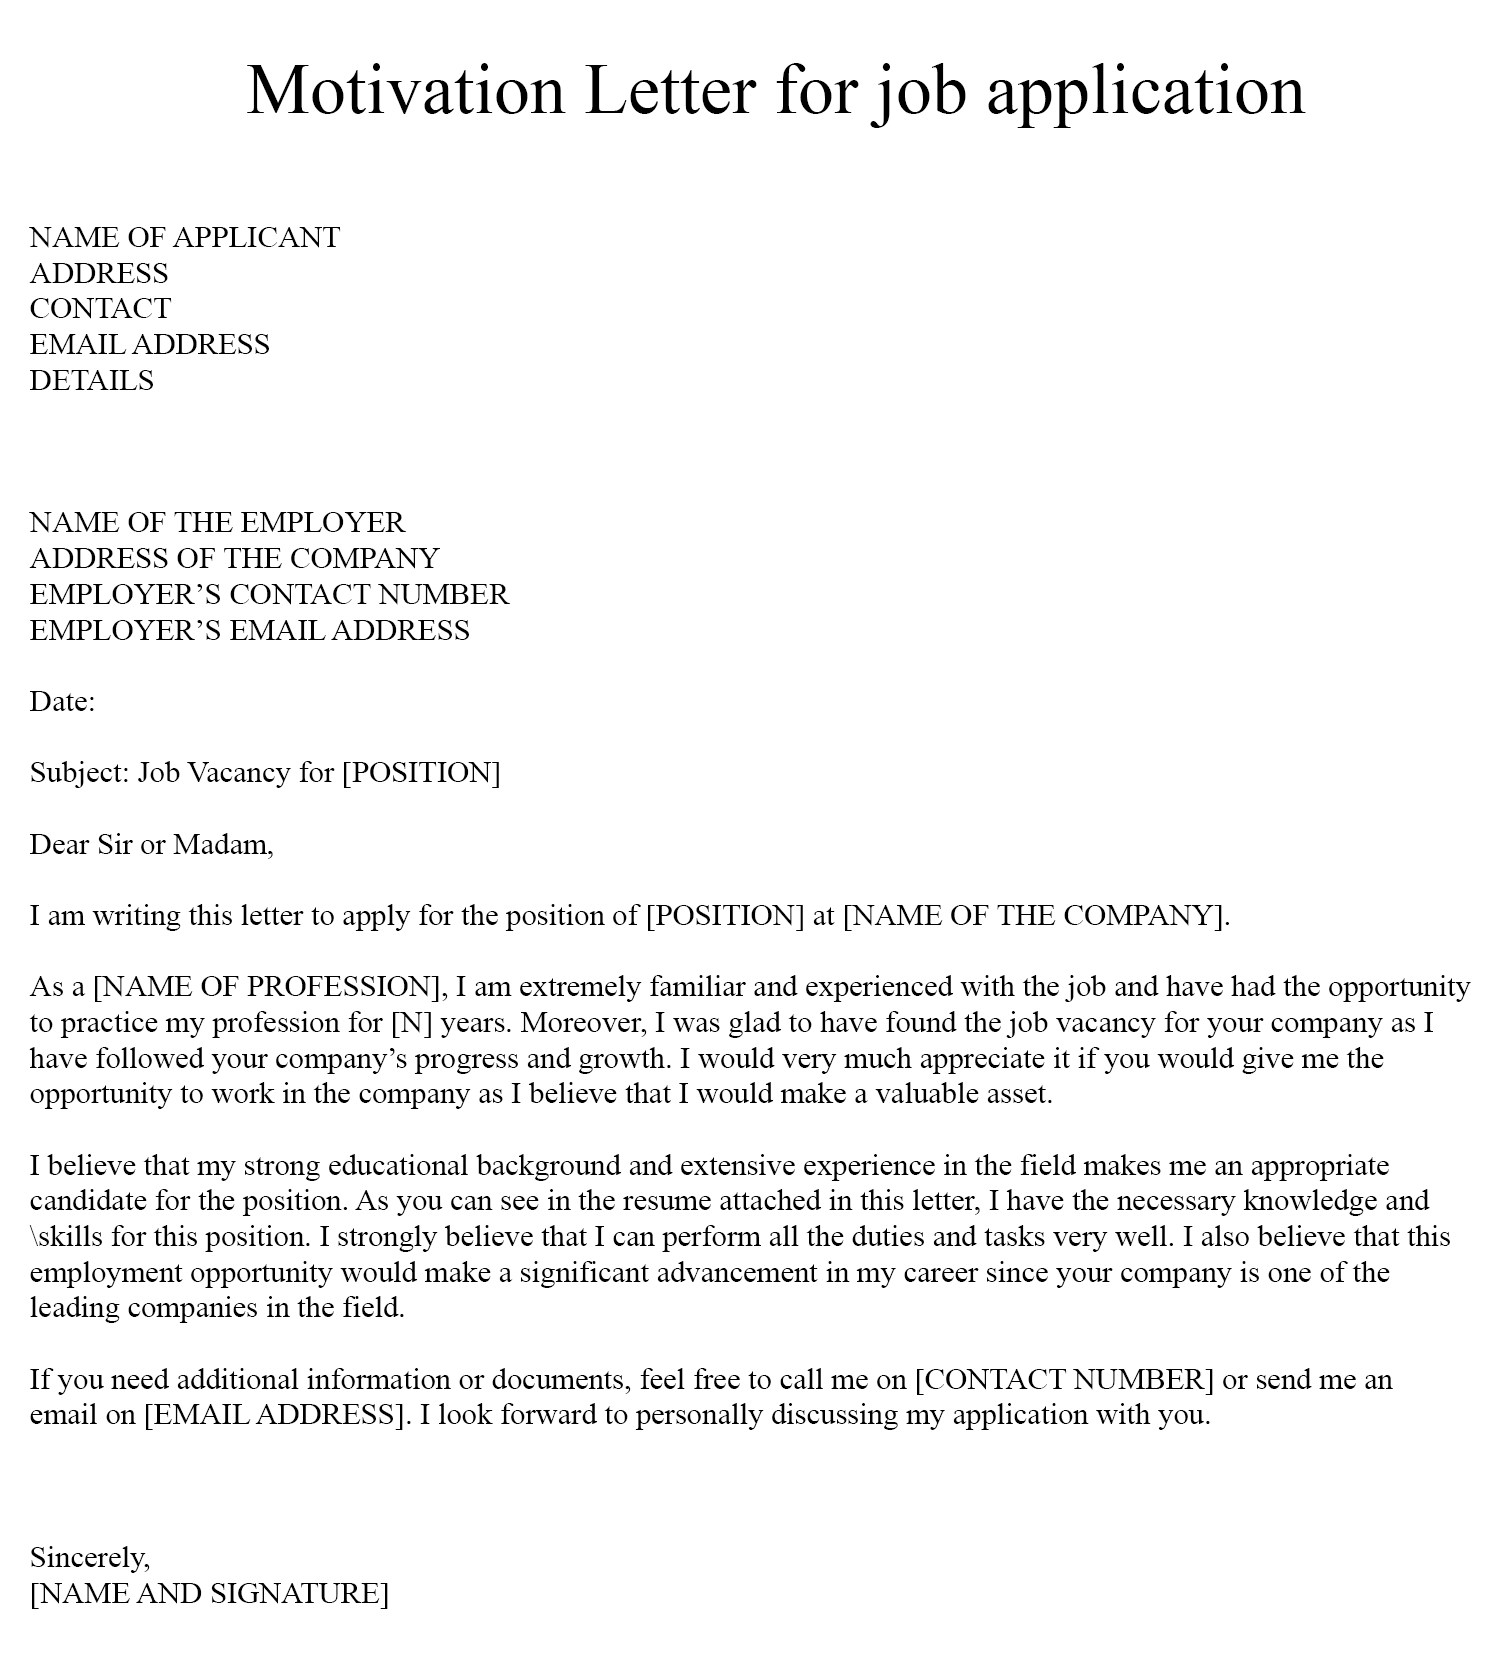 Motivation Letter for Job Example